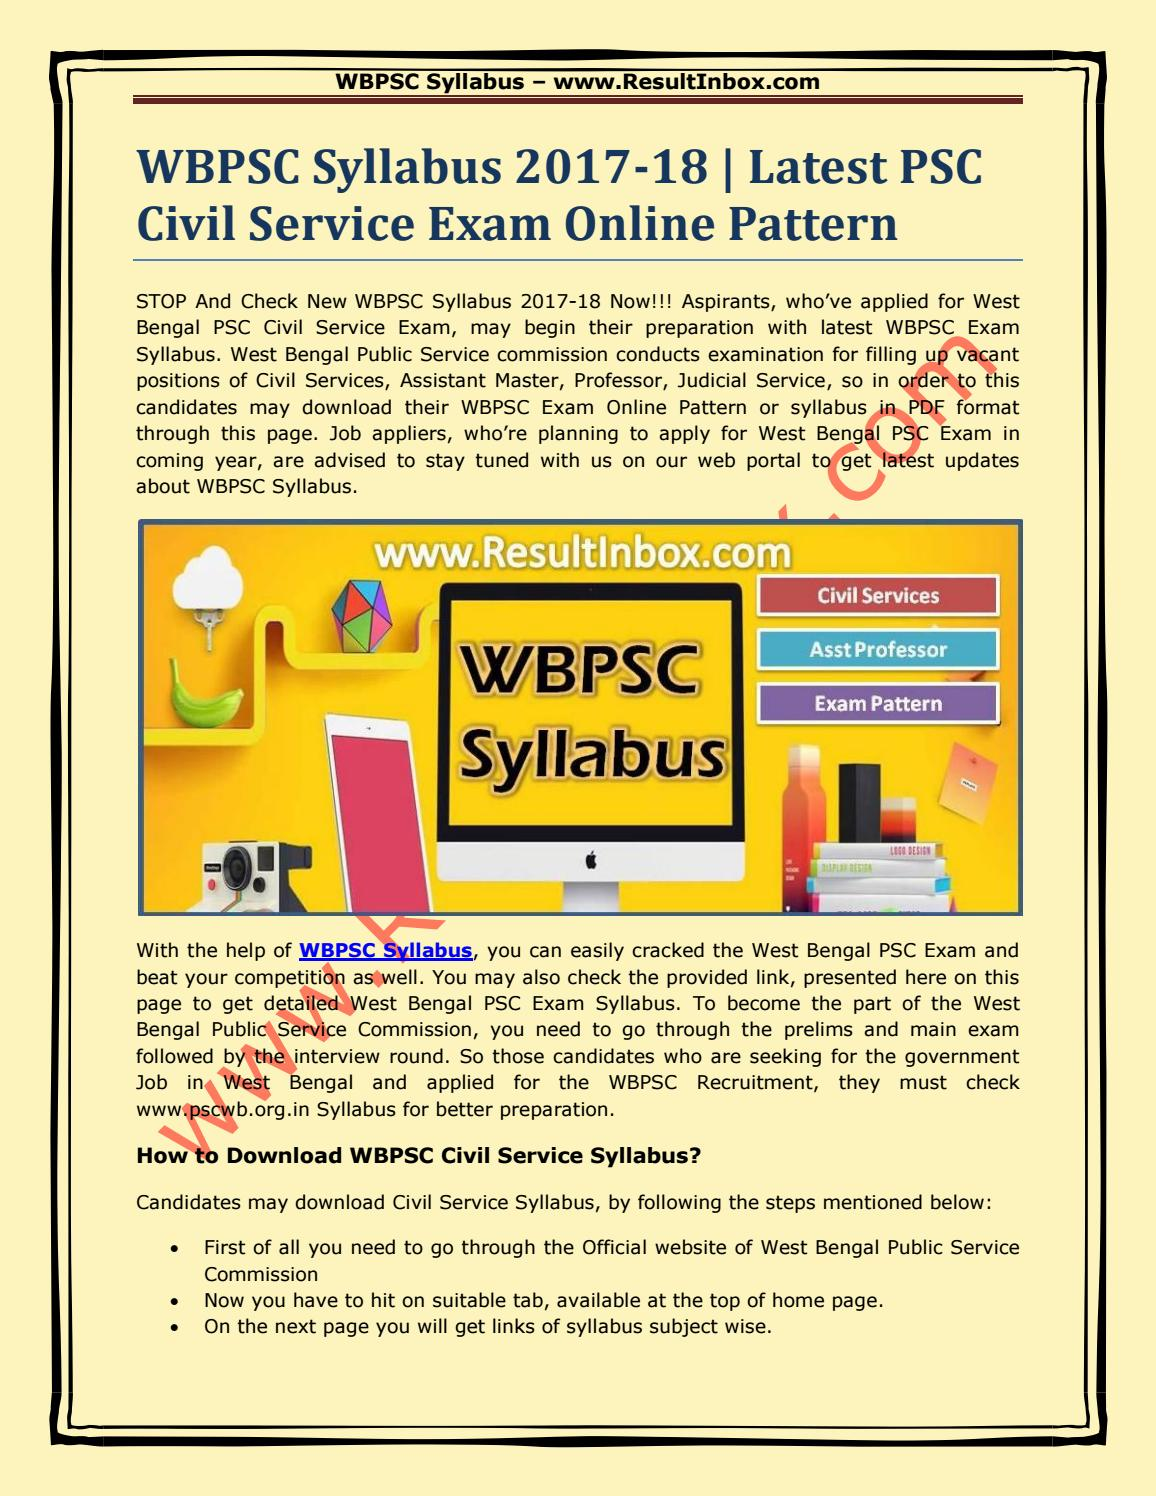 Wbpsc syllabus 2017 18 latest psc civil service exam online pattern by  Result Inbox - issuu